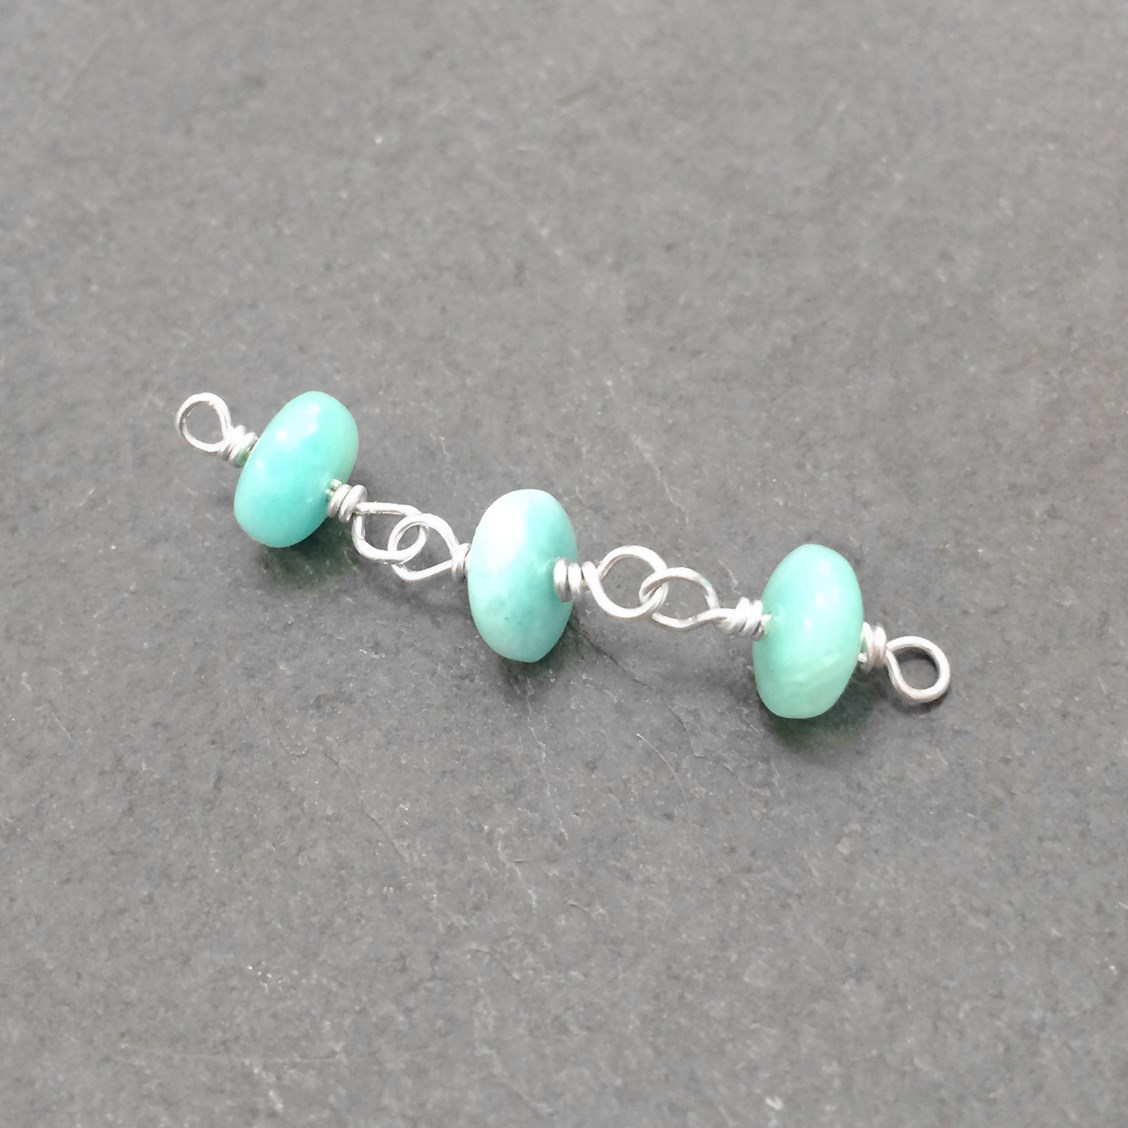 How To Make A Wire Wrapped Bead Chain | Kernowcraft